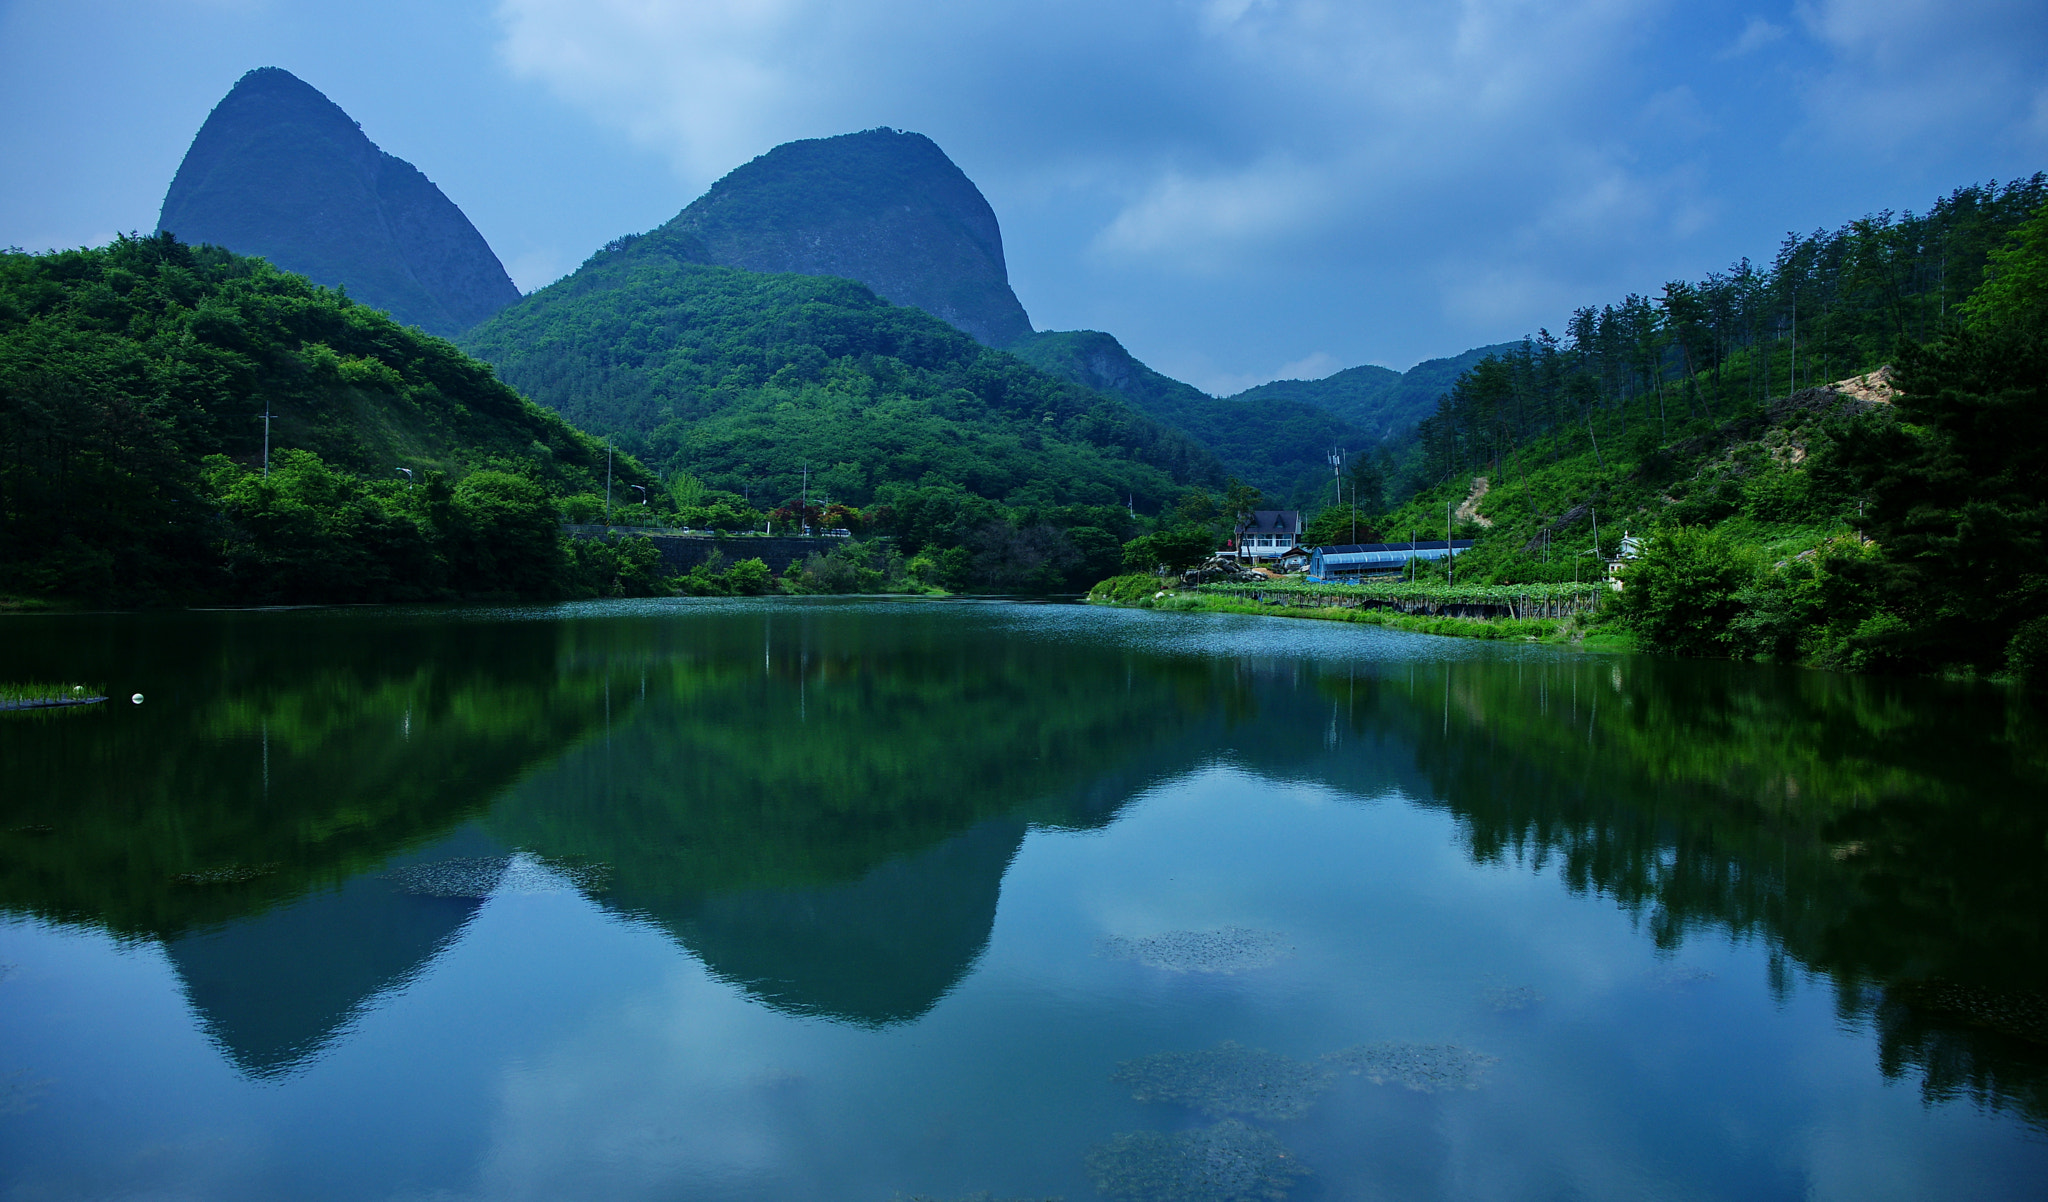 Photograph Mt. Mai by MiSeon Eoh on 500px